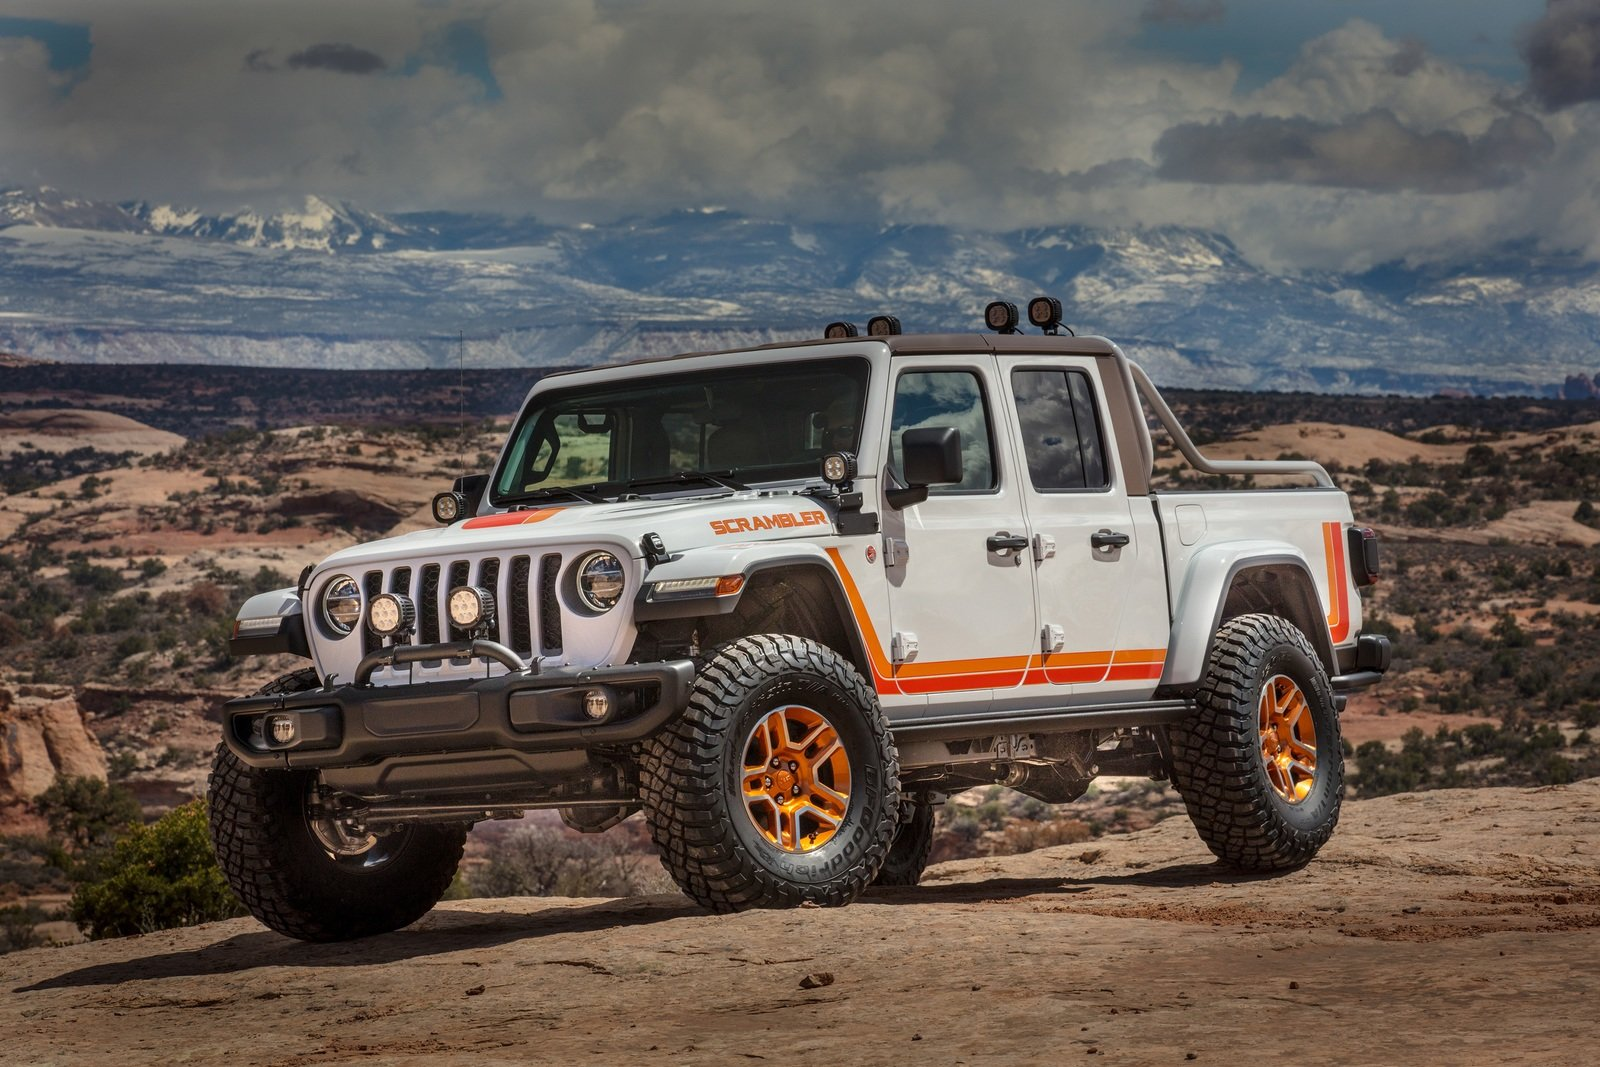 2019 jeep gladiator jt scrambler concept pictures  photos  wallpapers and video